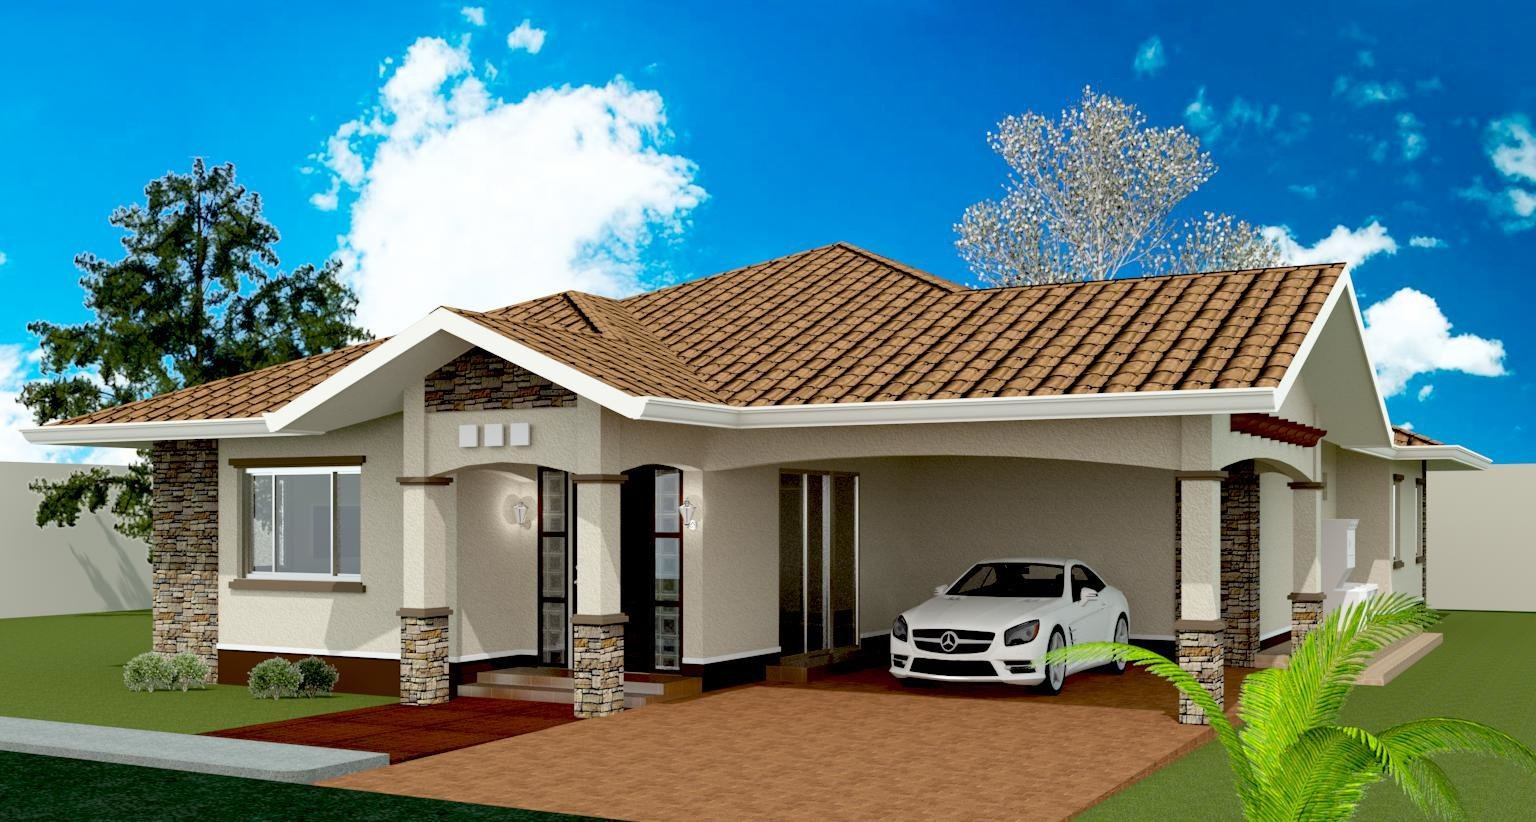 Best Model 3 3 Bedroom Bungalow Design Negros Construction With Pictures